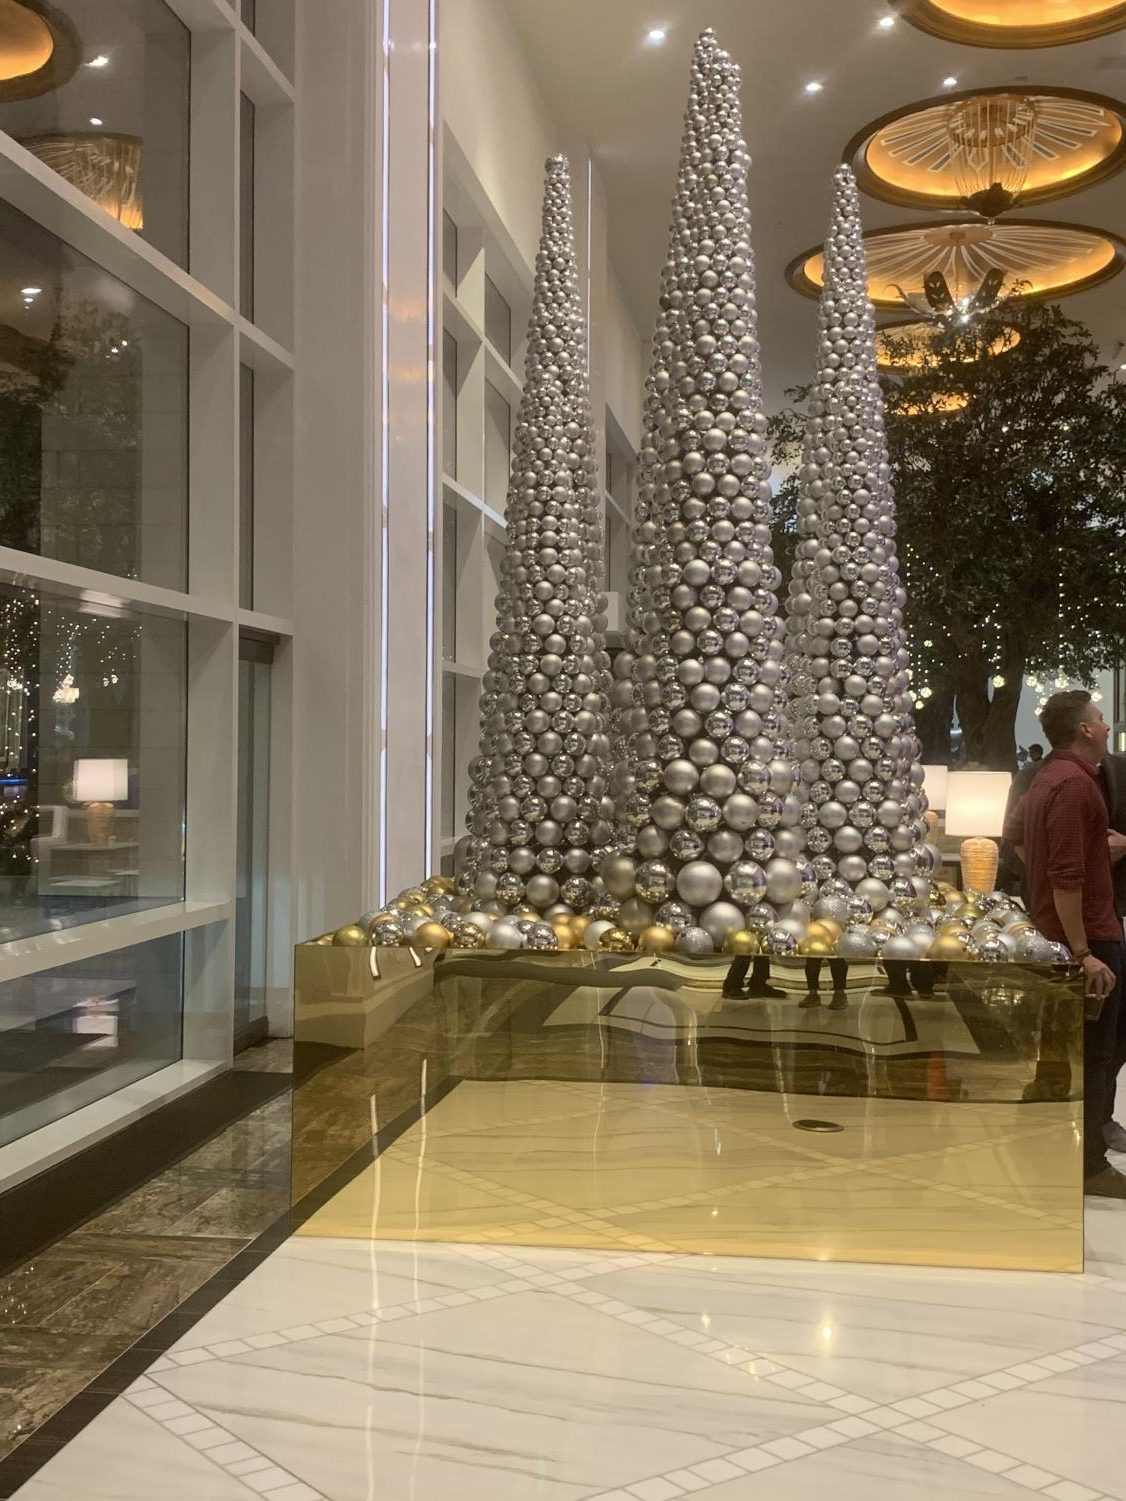 There+were+many+places+for+guests+to+take+pictures%2C+including+these+towers+of+ornaments+that+resembled+Christmas+trees.++All+the+ornaments+were+glued+carefully+a+month+in+advance+to+prepare+for+the+event.